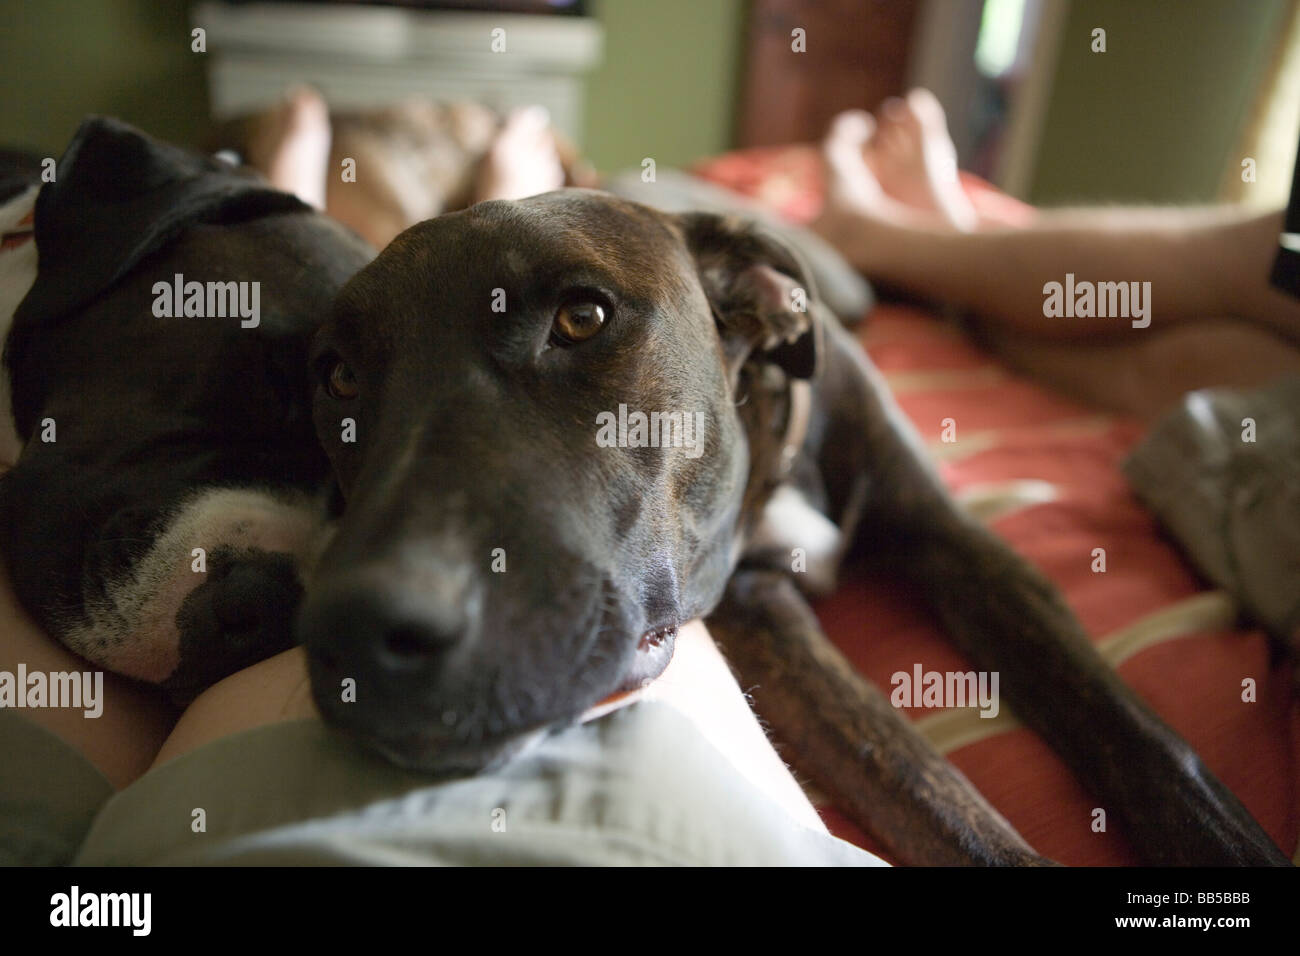 close up of two dogs resting on a person's leg, laying on bed in bedroom, eye contact with camera - Stock Image